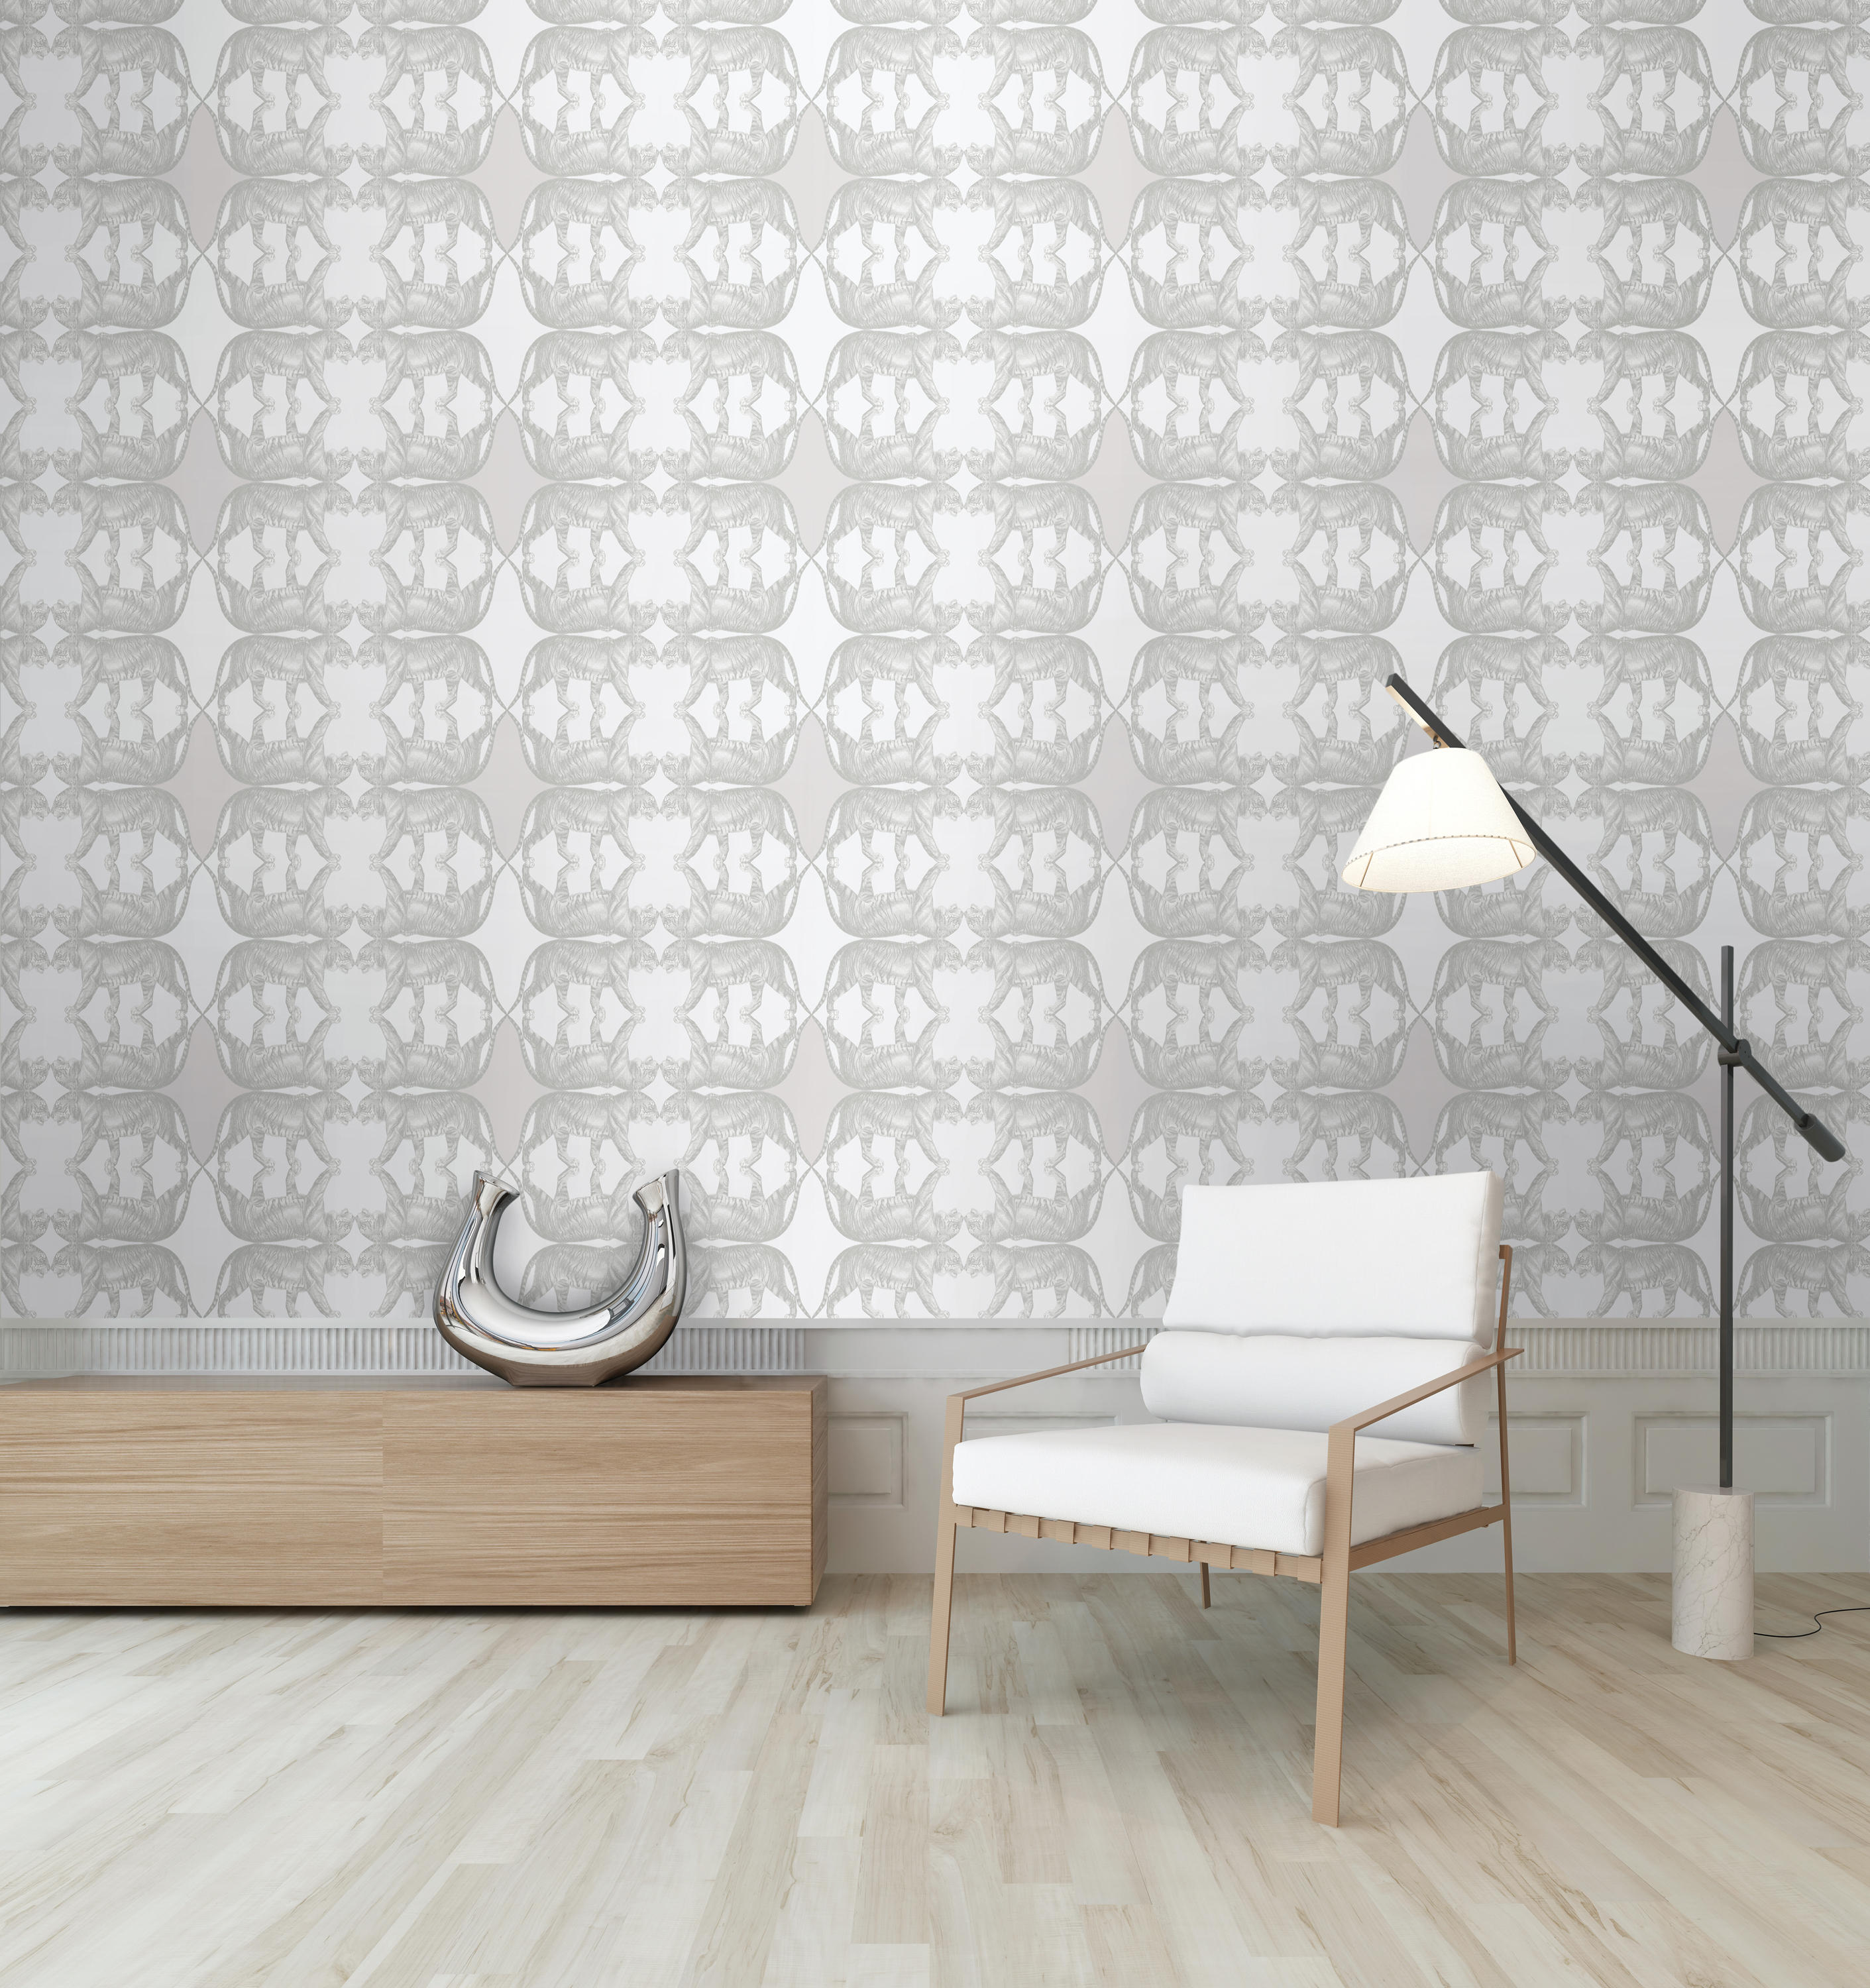 tigers teal wall coverings wallpapers from tenue de ville architonic. Black Bedroom Furniture Sets. Home Design Ideas